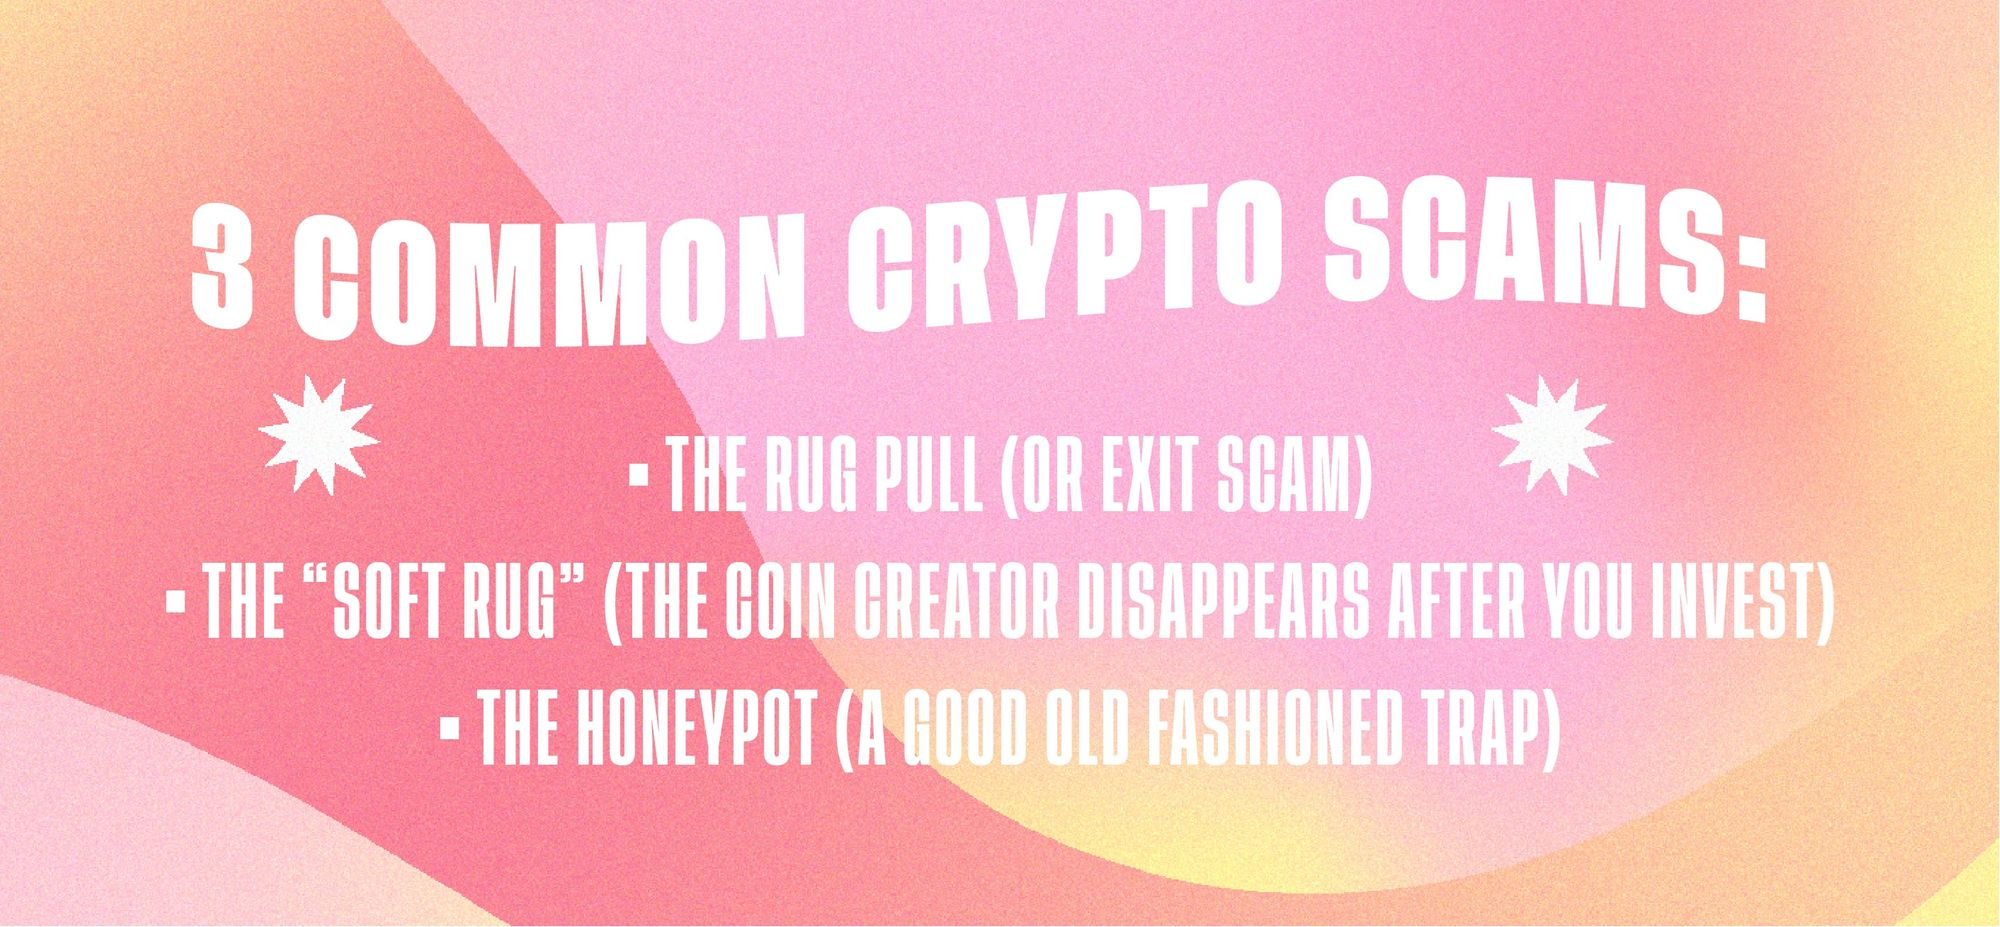 """3 common crypto scams: The Rug Pull (or Exit Scam); The """"Soft Rug"""" (The Coin Creator Disappears After You Invest); The Honeypot (A Good Old Fashioned Trap)"""